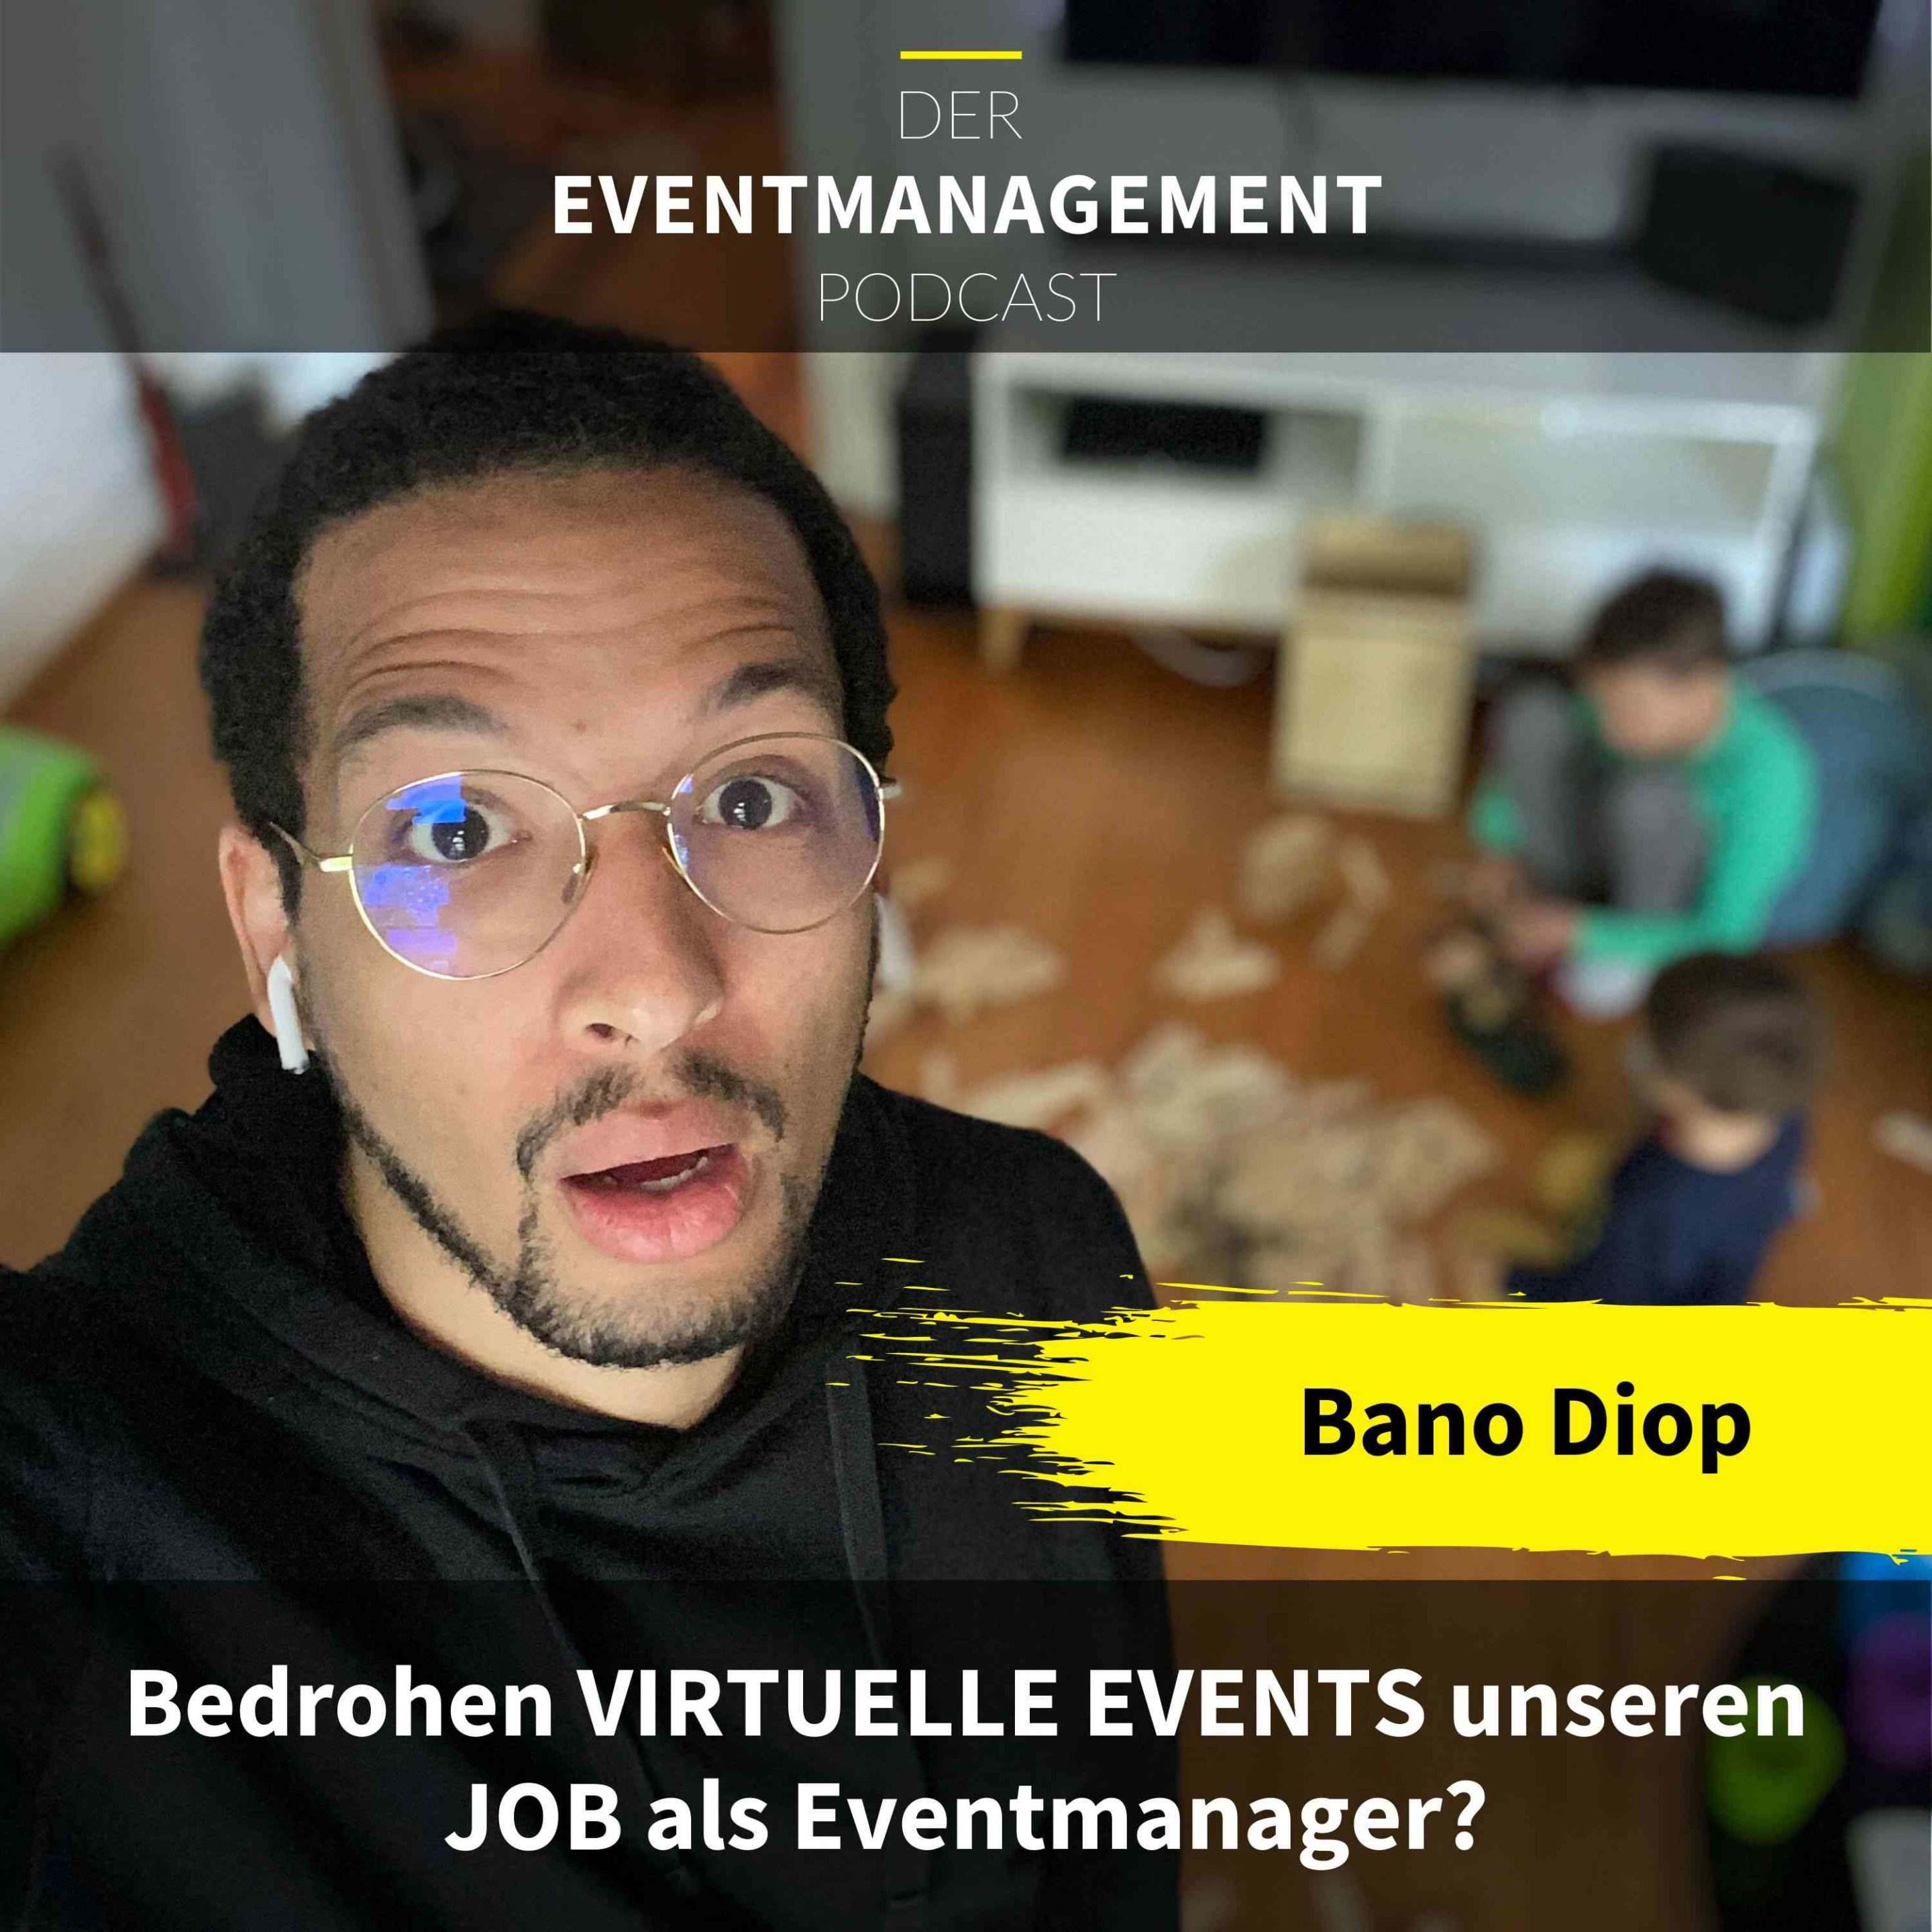 Bedrohen Virtuelle Events unseren Job als EventmanagerInnen?